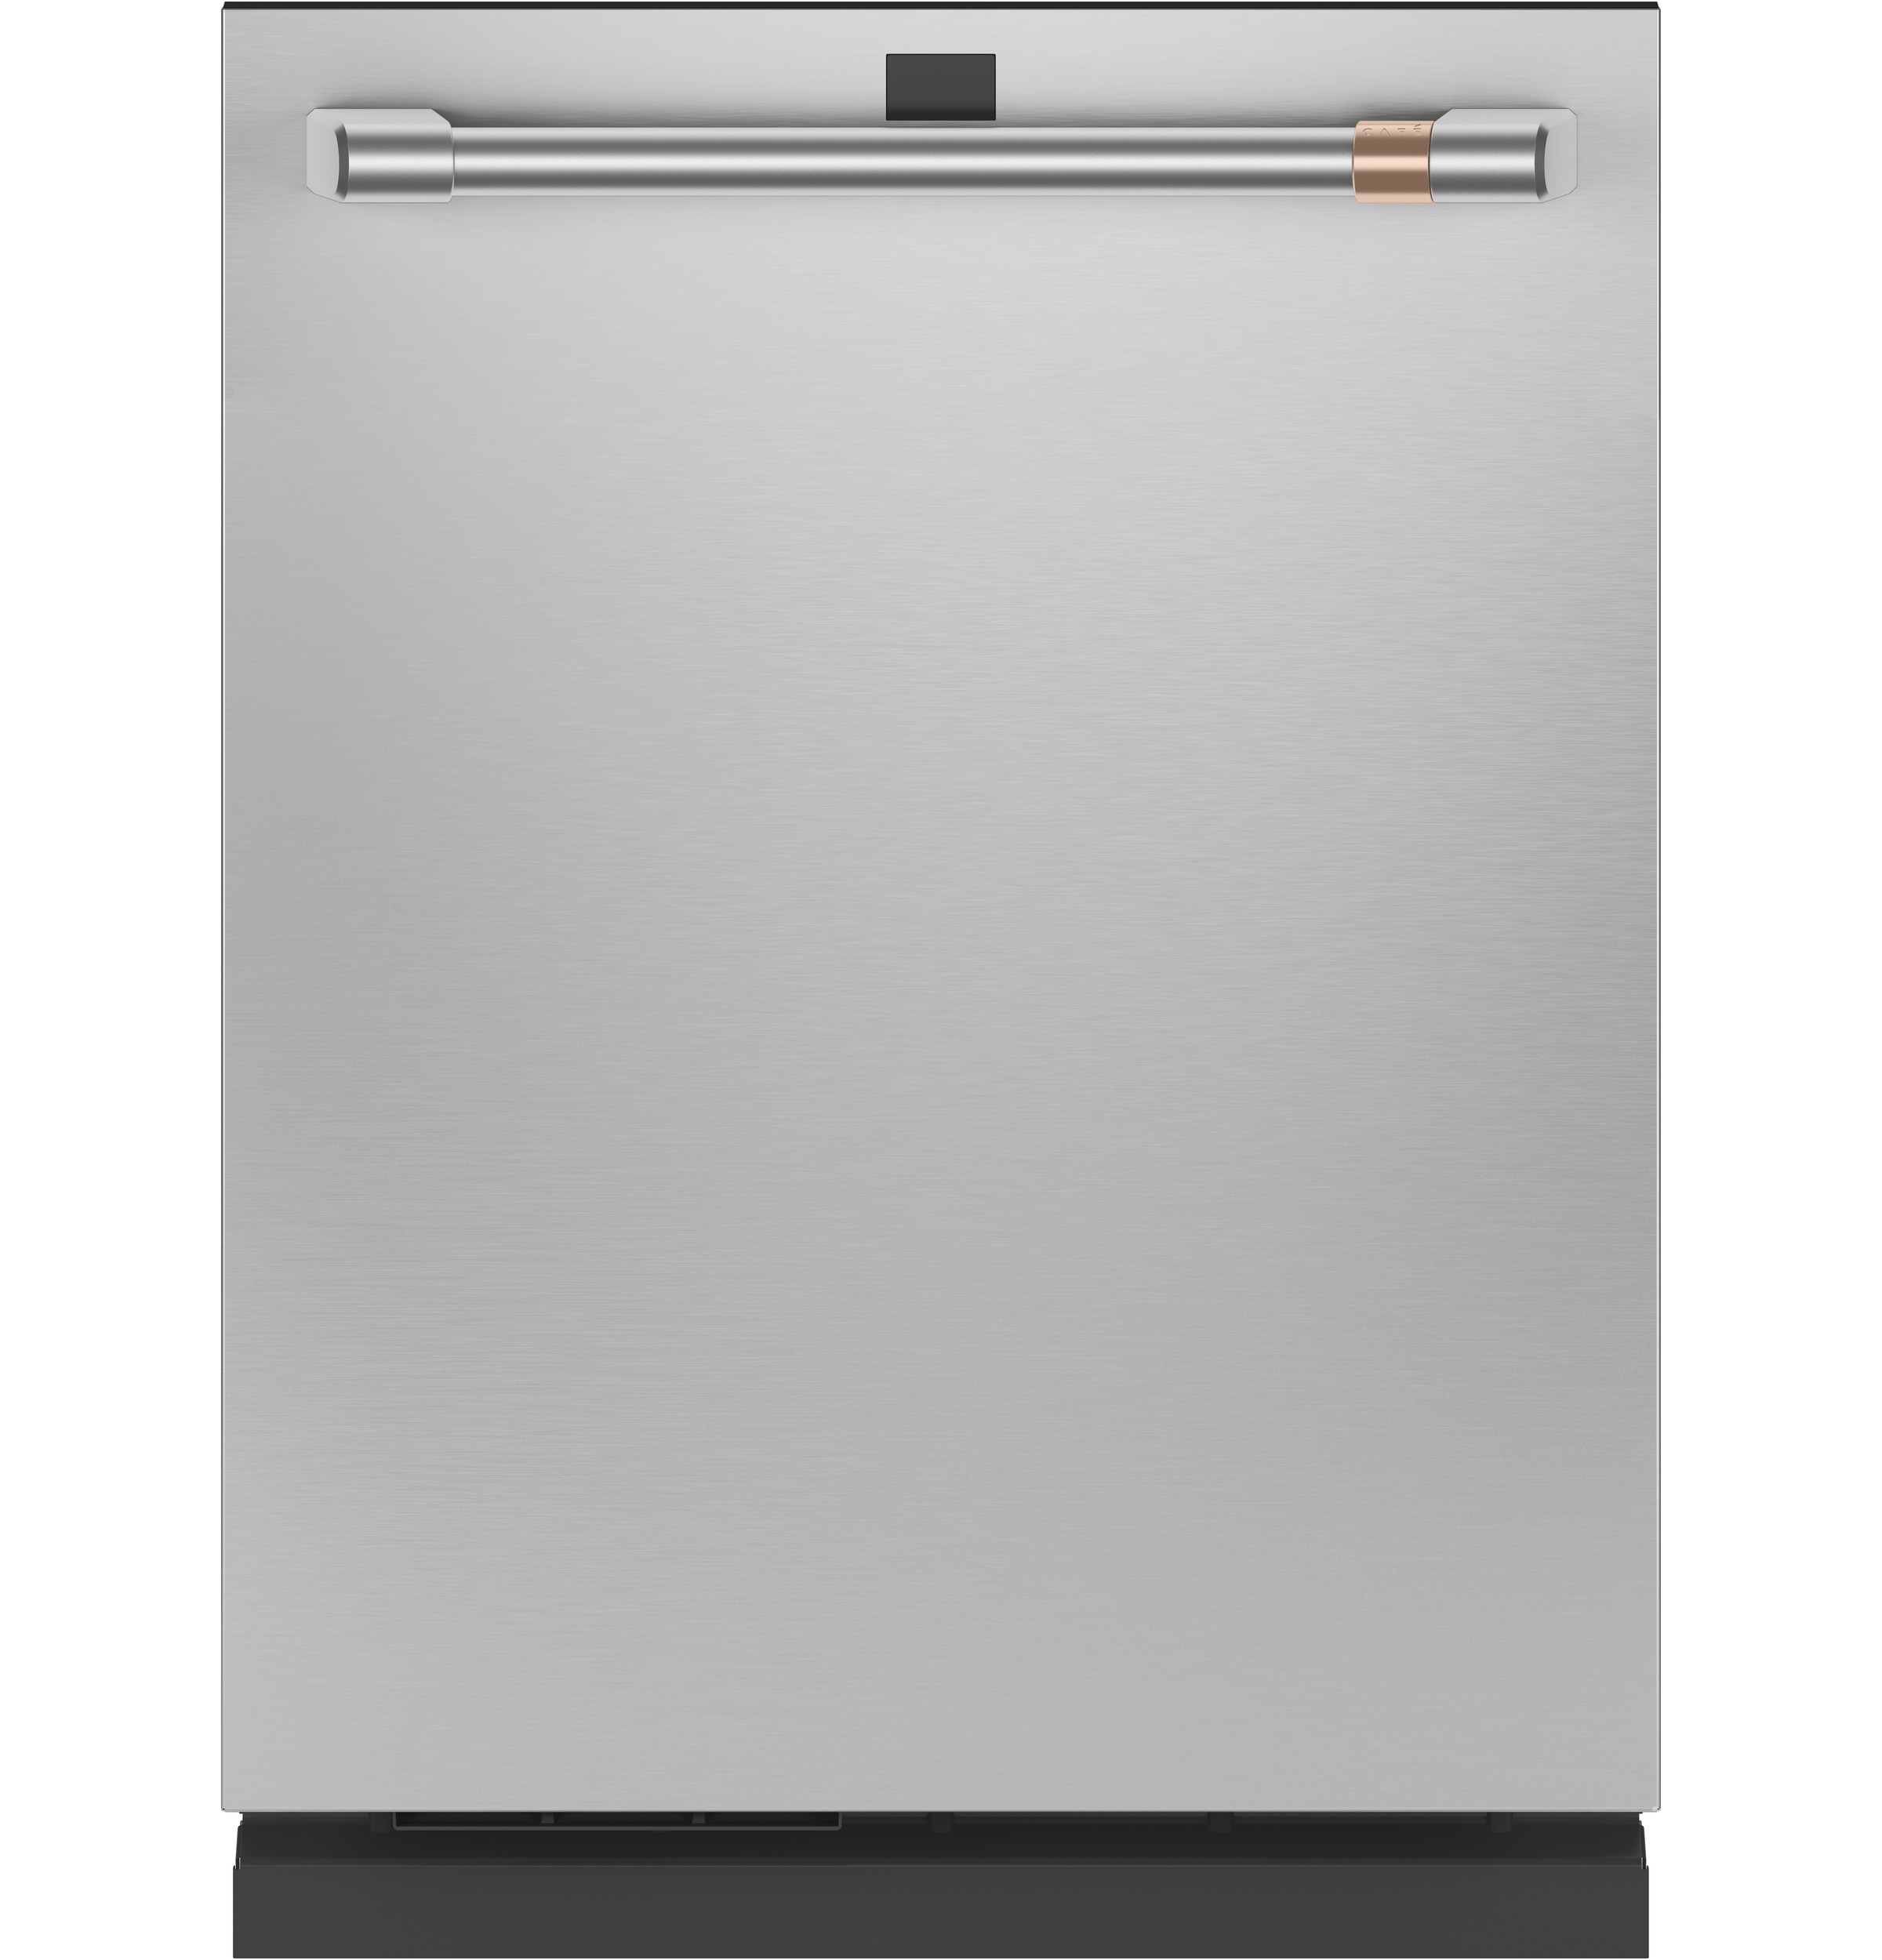 Cafe Café™ Smart Stainless Steel Interior Dishwasher with Sanitize and Ultra Wash & Dual Convection Ultra Dry